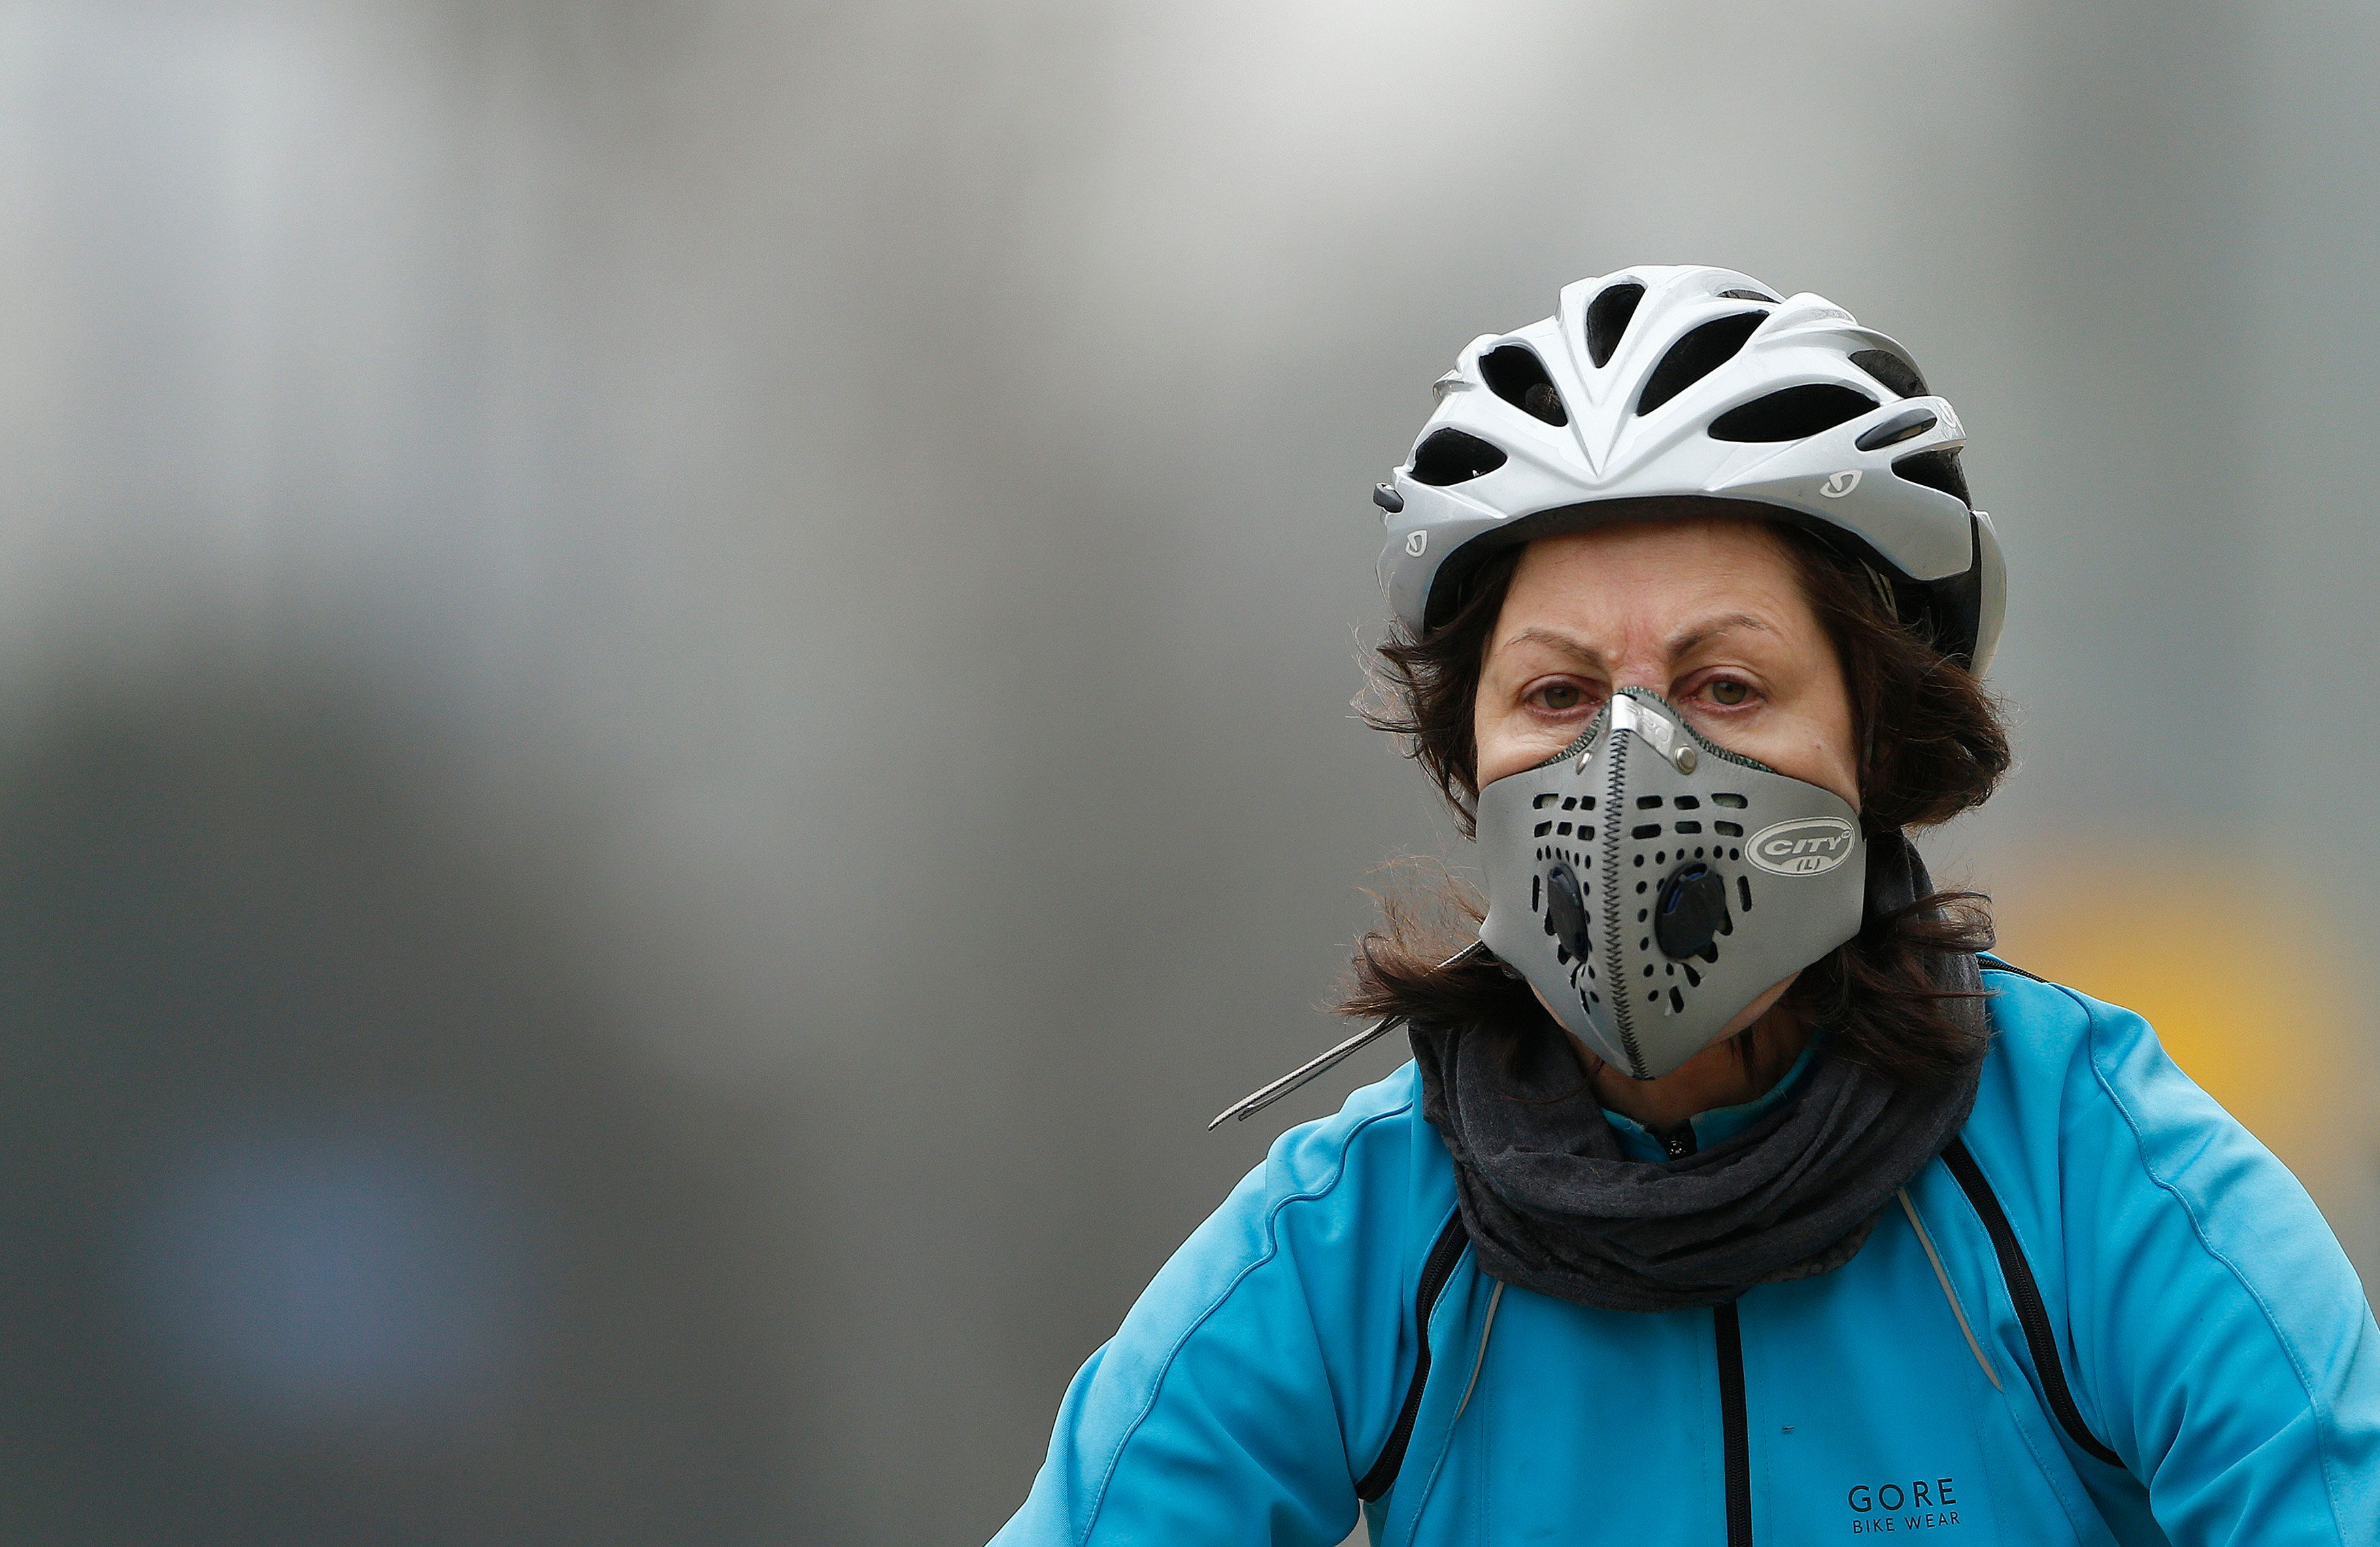 The UK's Guideline Levels Of Air Pollution Can Cause 'Serious' Changes To The